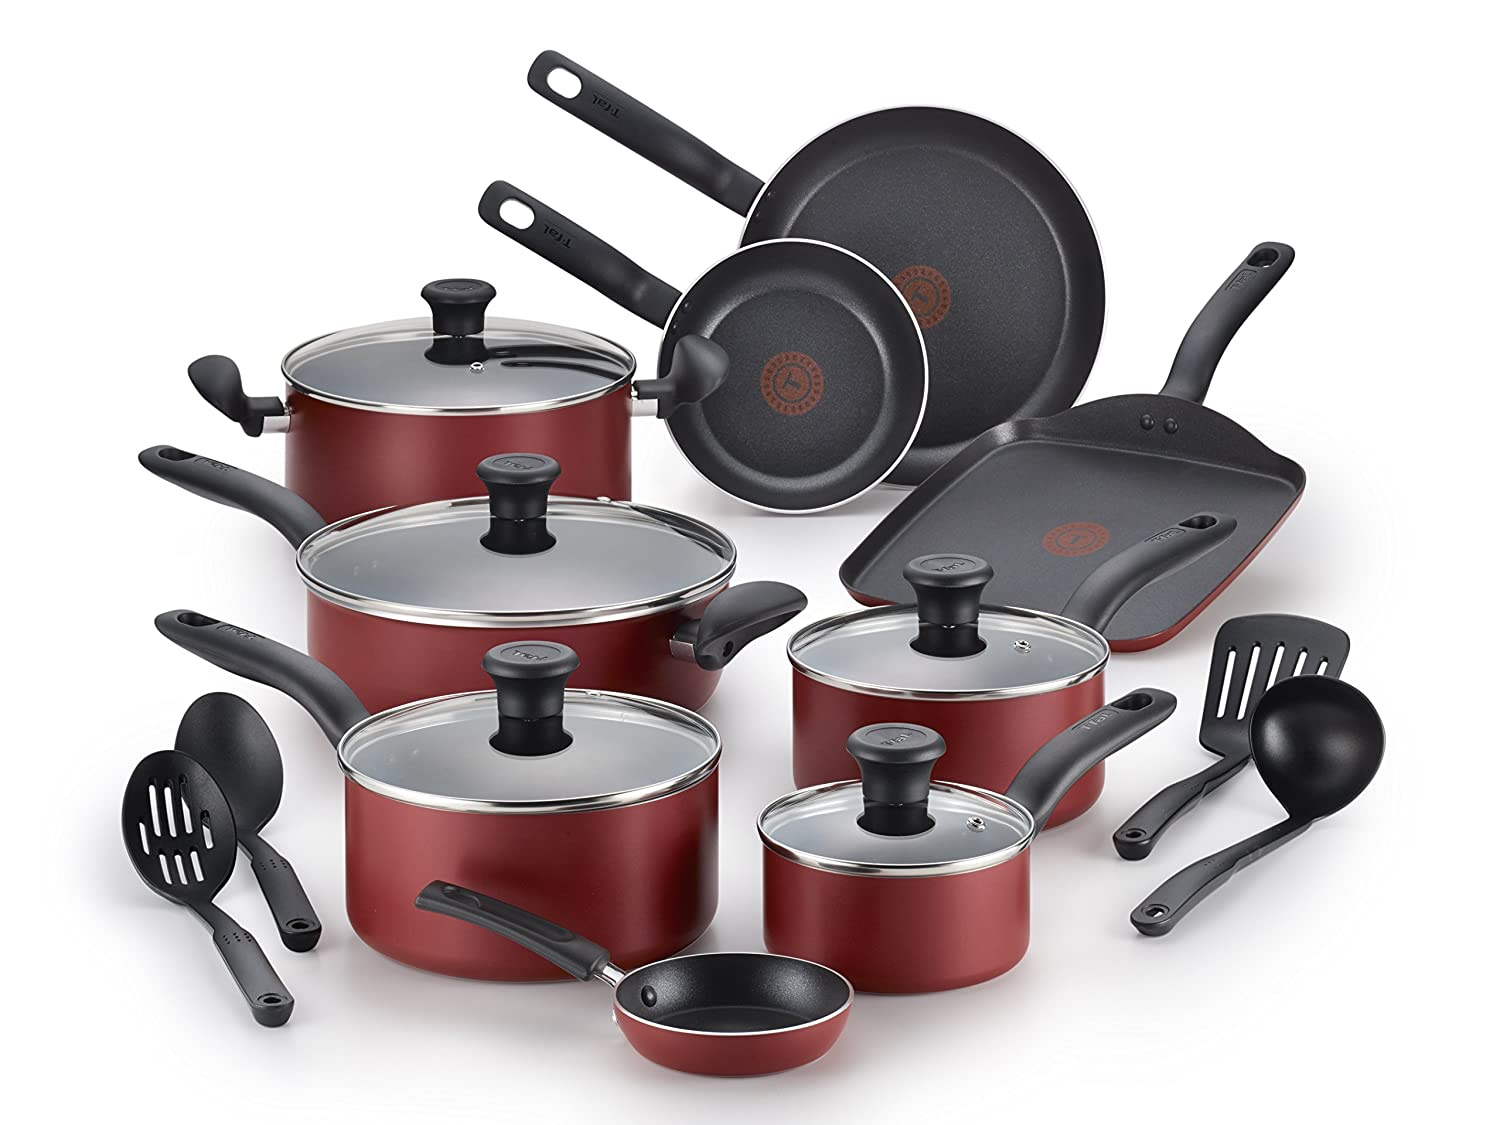 T-fal A821SA Initiatives Nonstick Inside and Out Dishwasher Safe Oven Safe Cookware Set, 10-Piece, Charcoal Groupe SEB 2100097752